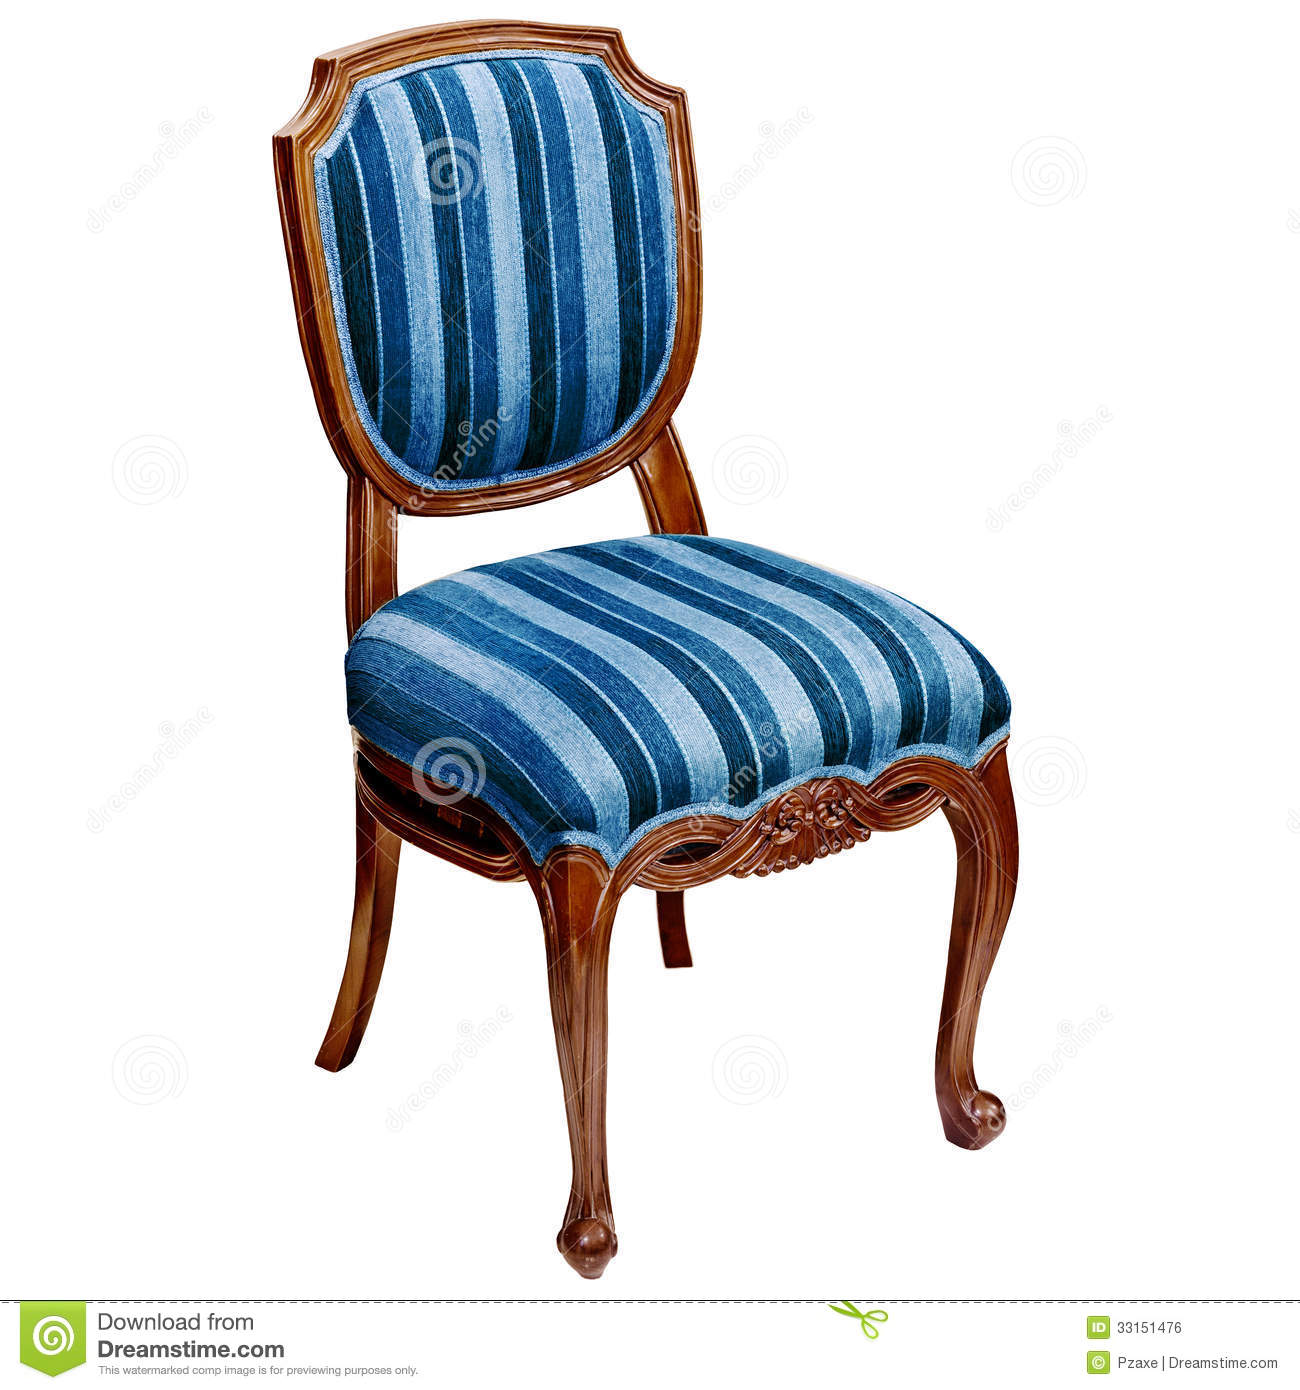 Blue Striped Chair Isolated On White Background Royalty